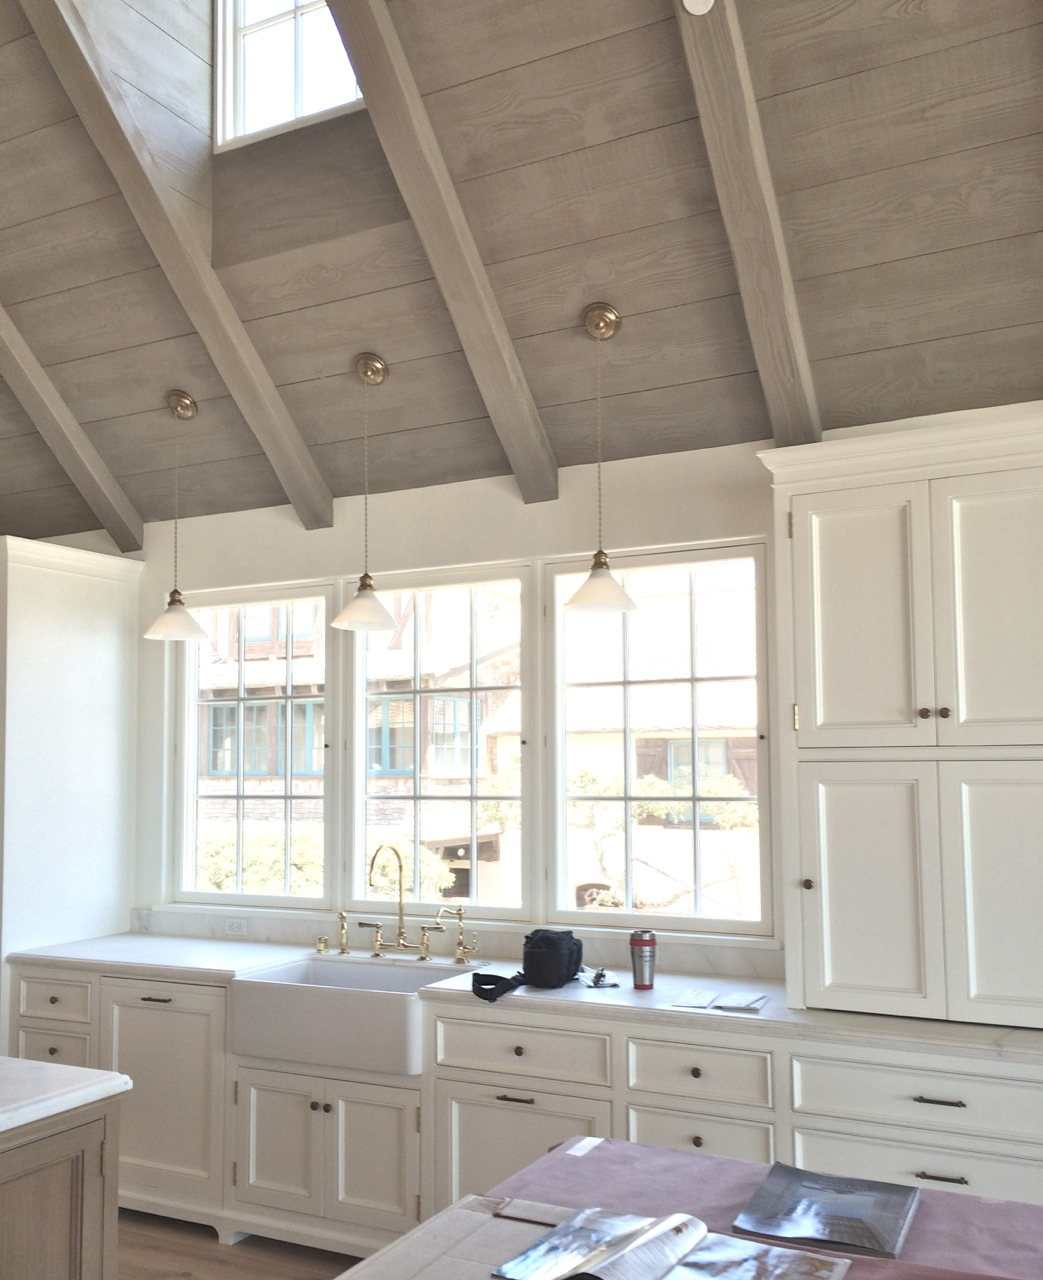 Kitchen Lighting With Vaulted Ceiling: 6a00e554d7b827883301a73ddecb20970d-pi 1,043×1,280 Pixels